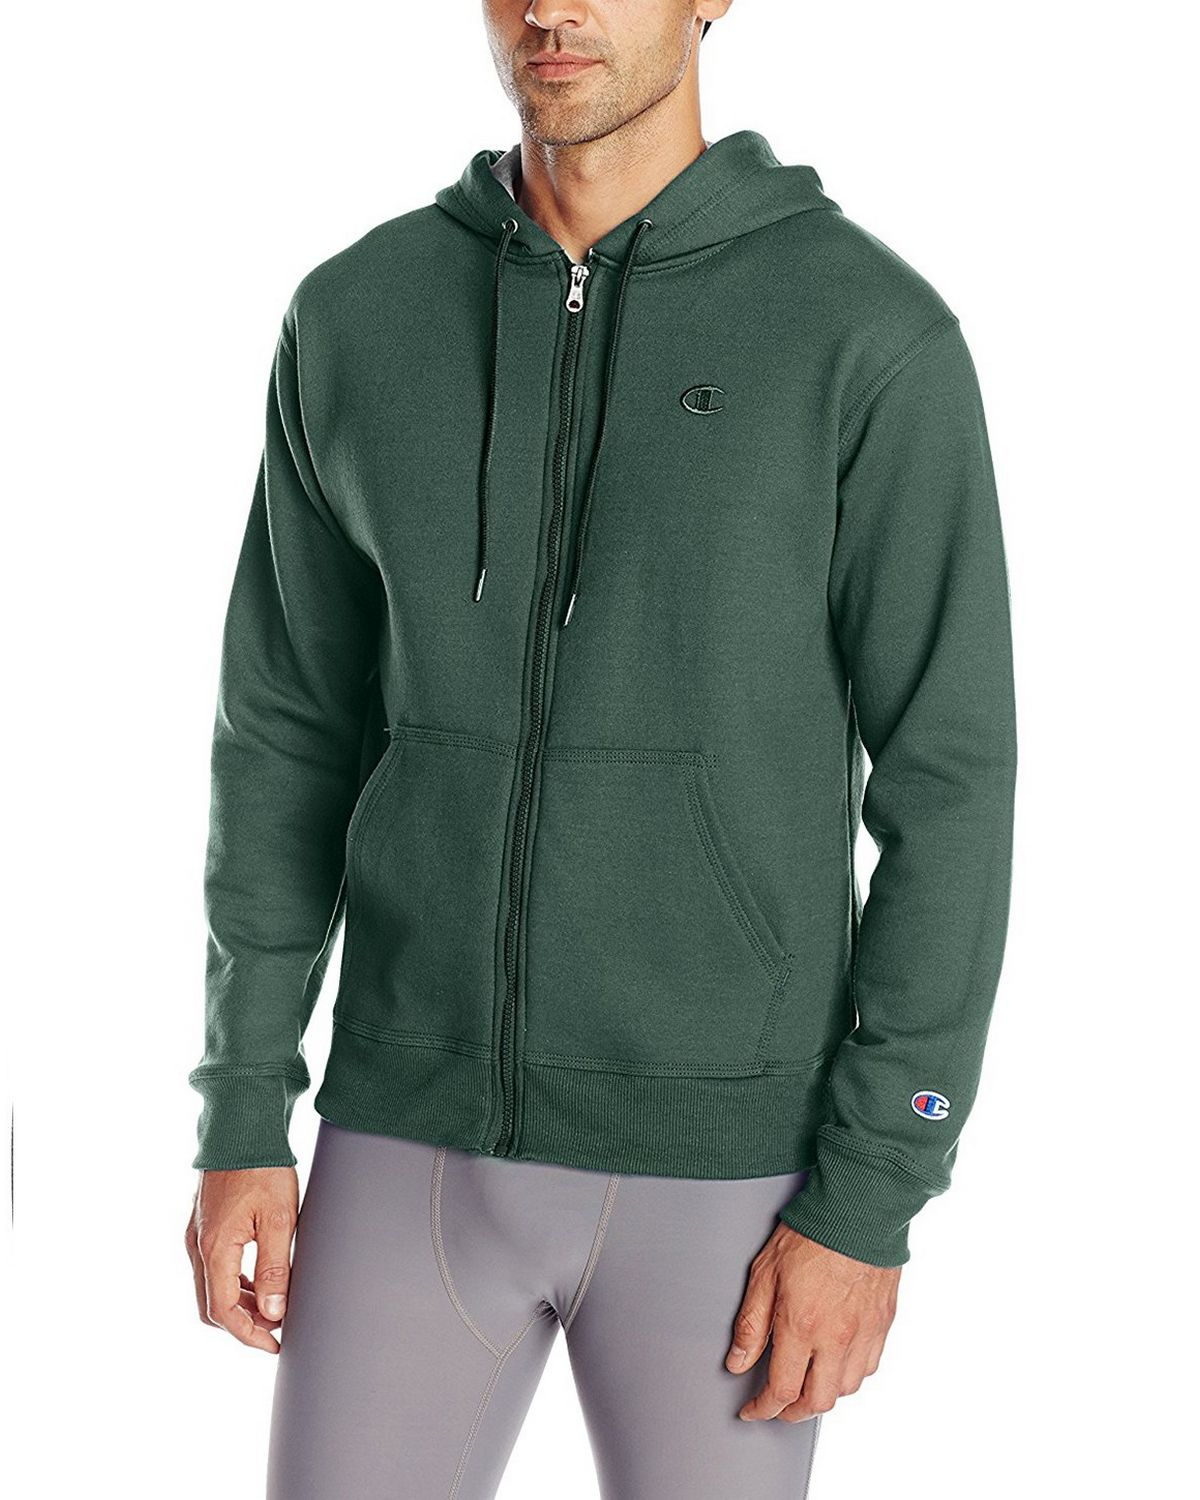 Champion S0891 Mens Fleece Full Zip Jacket - Dark Green - L S0891